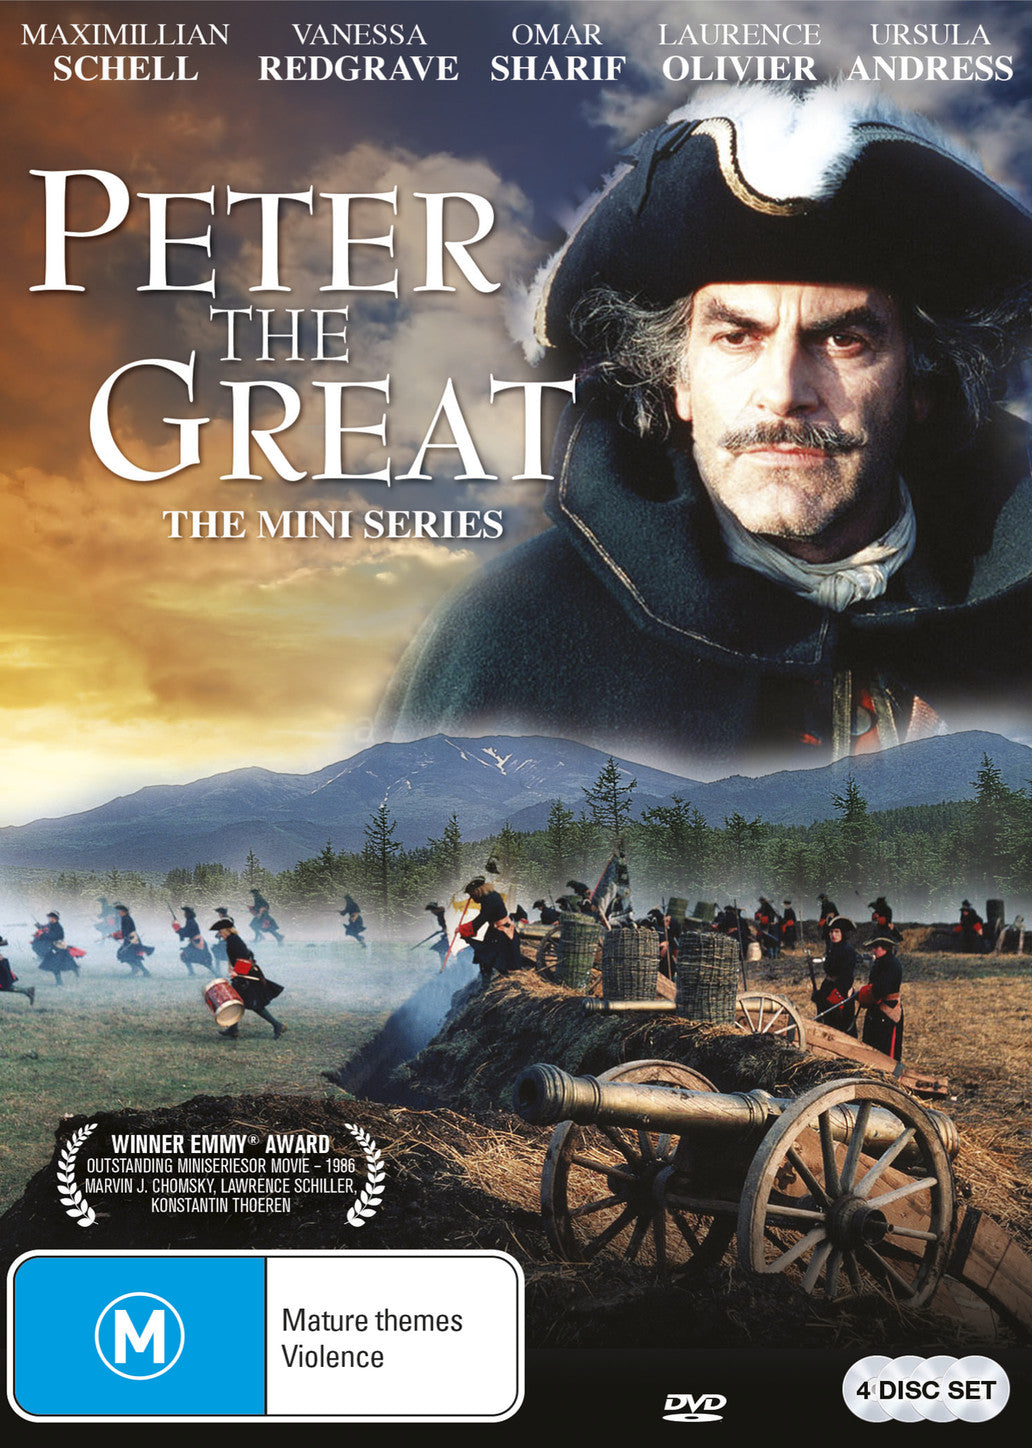 Peter the Great: The Mini Series DVD